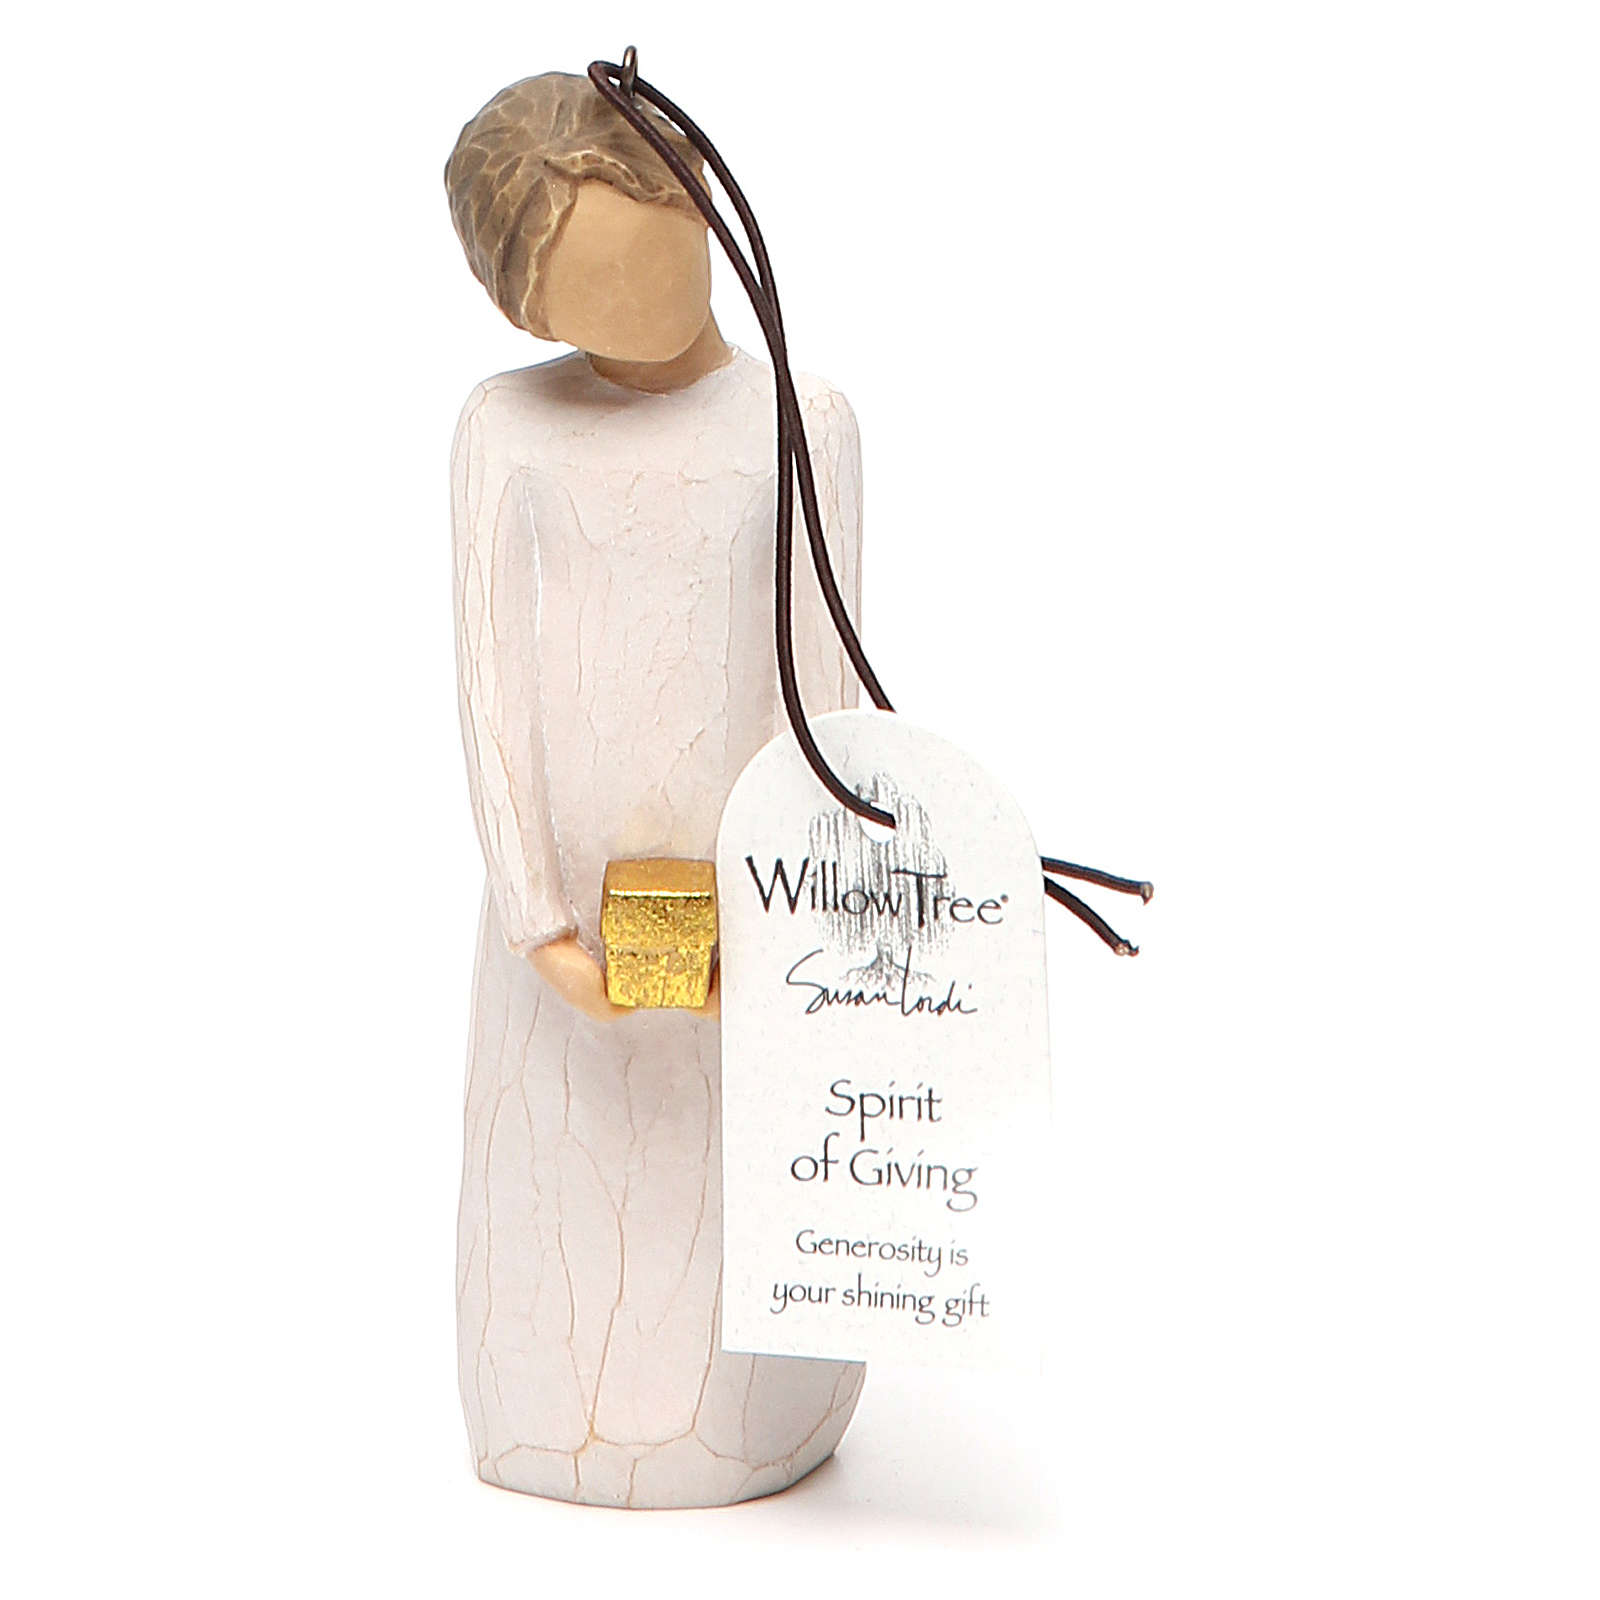 Willow Tree - Spirit of giving (Generosità) Ornament 4